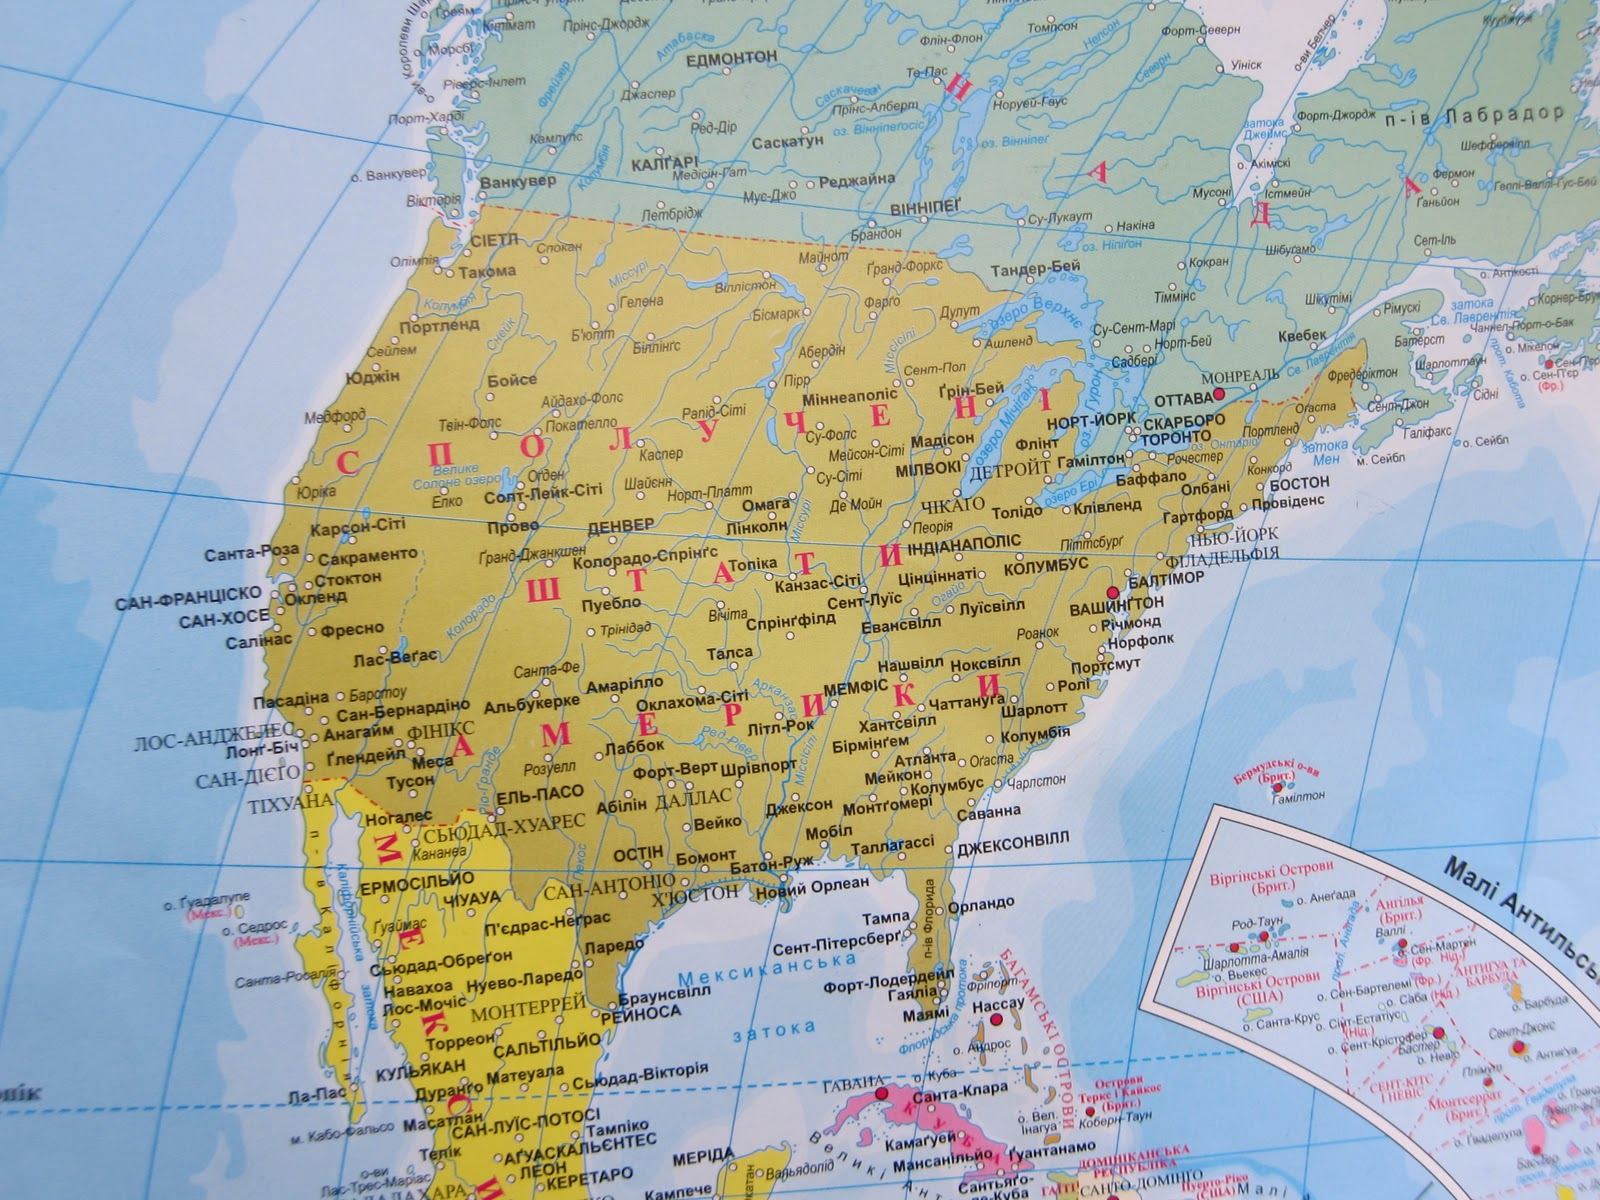 map in ukrainian of usa which i felt compelled to photograph as it had carson city on it